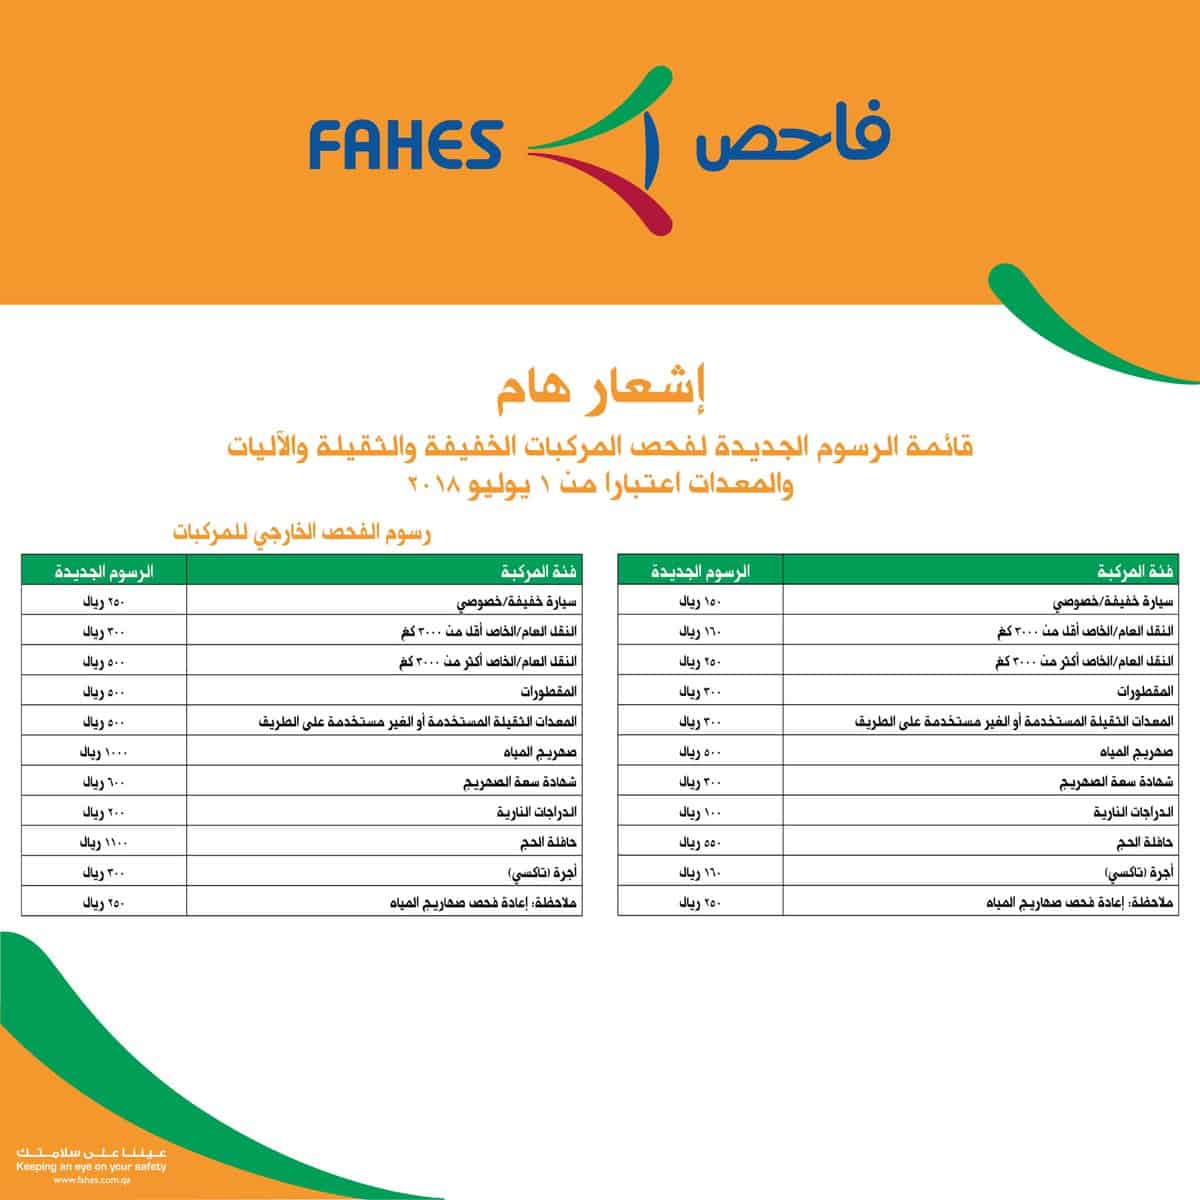 Fahes raises technical inspection fee from July 1